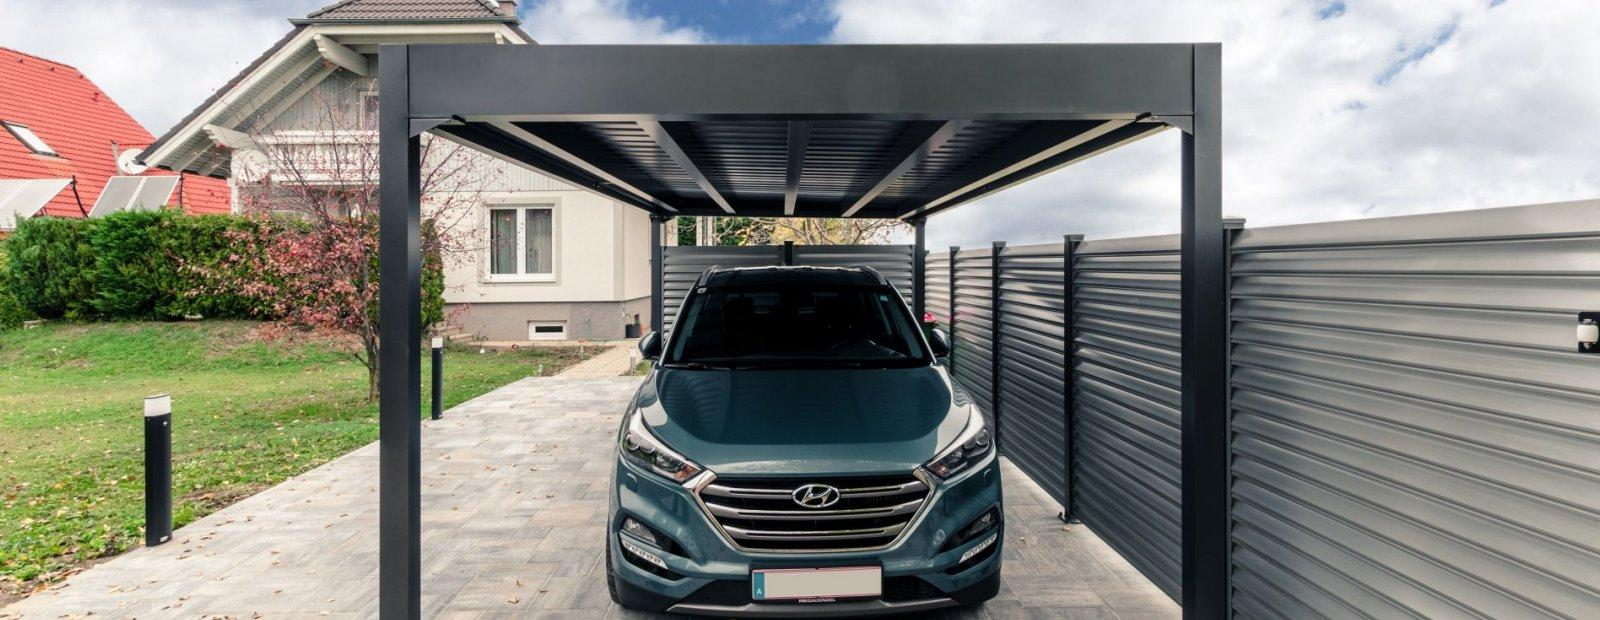 Slider Carport Guardi